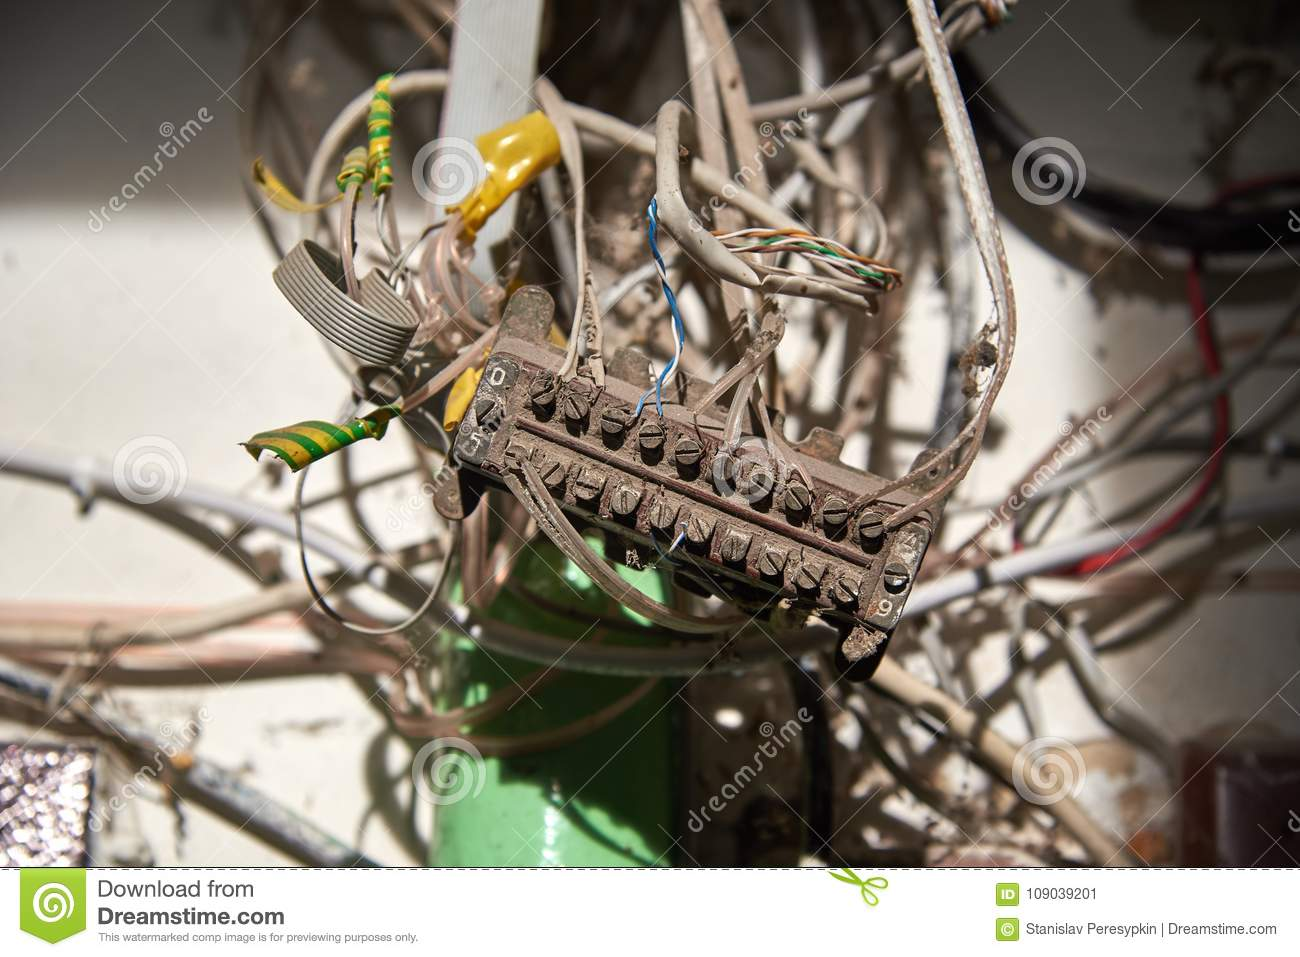 Poorly insulated, dirty ugly wires.